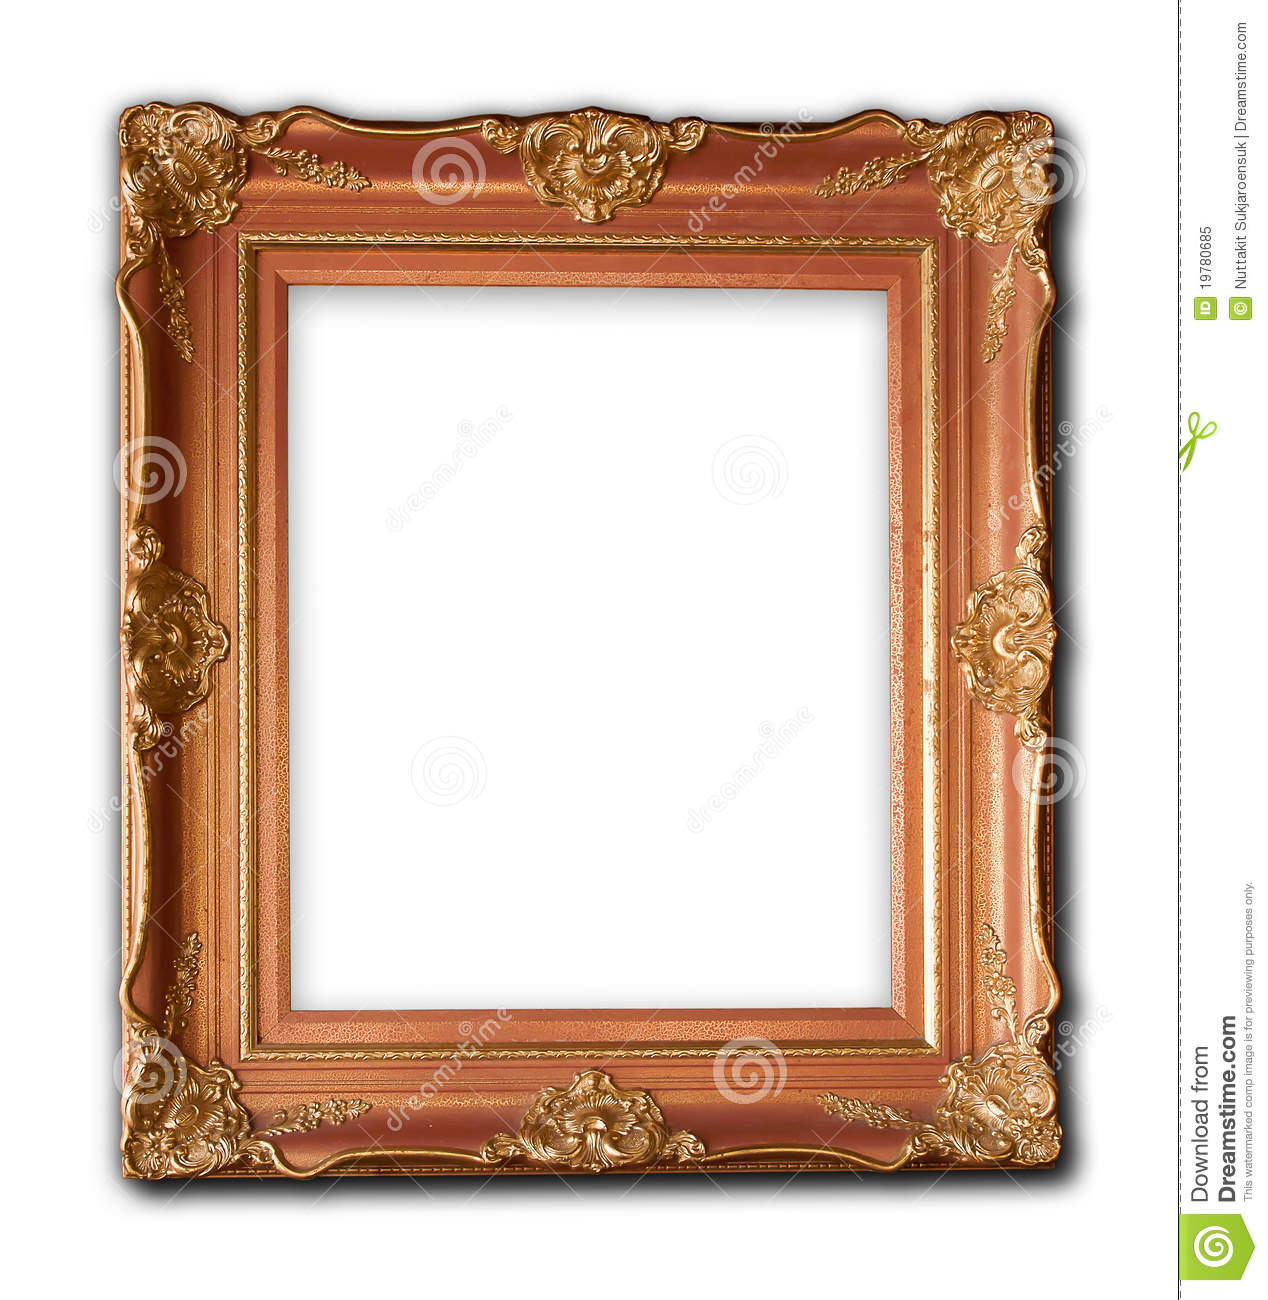 wood frame carved renaissance designs royalty free stock photo image